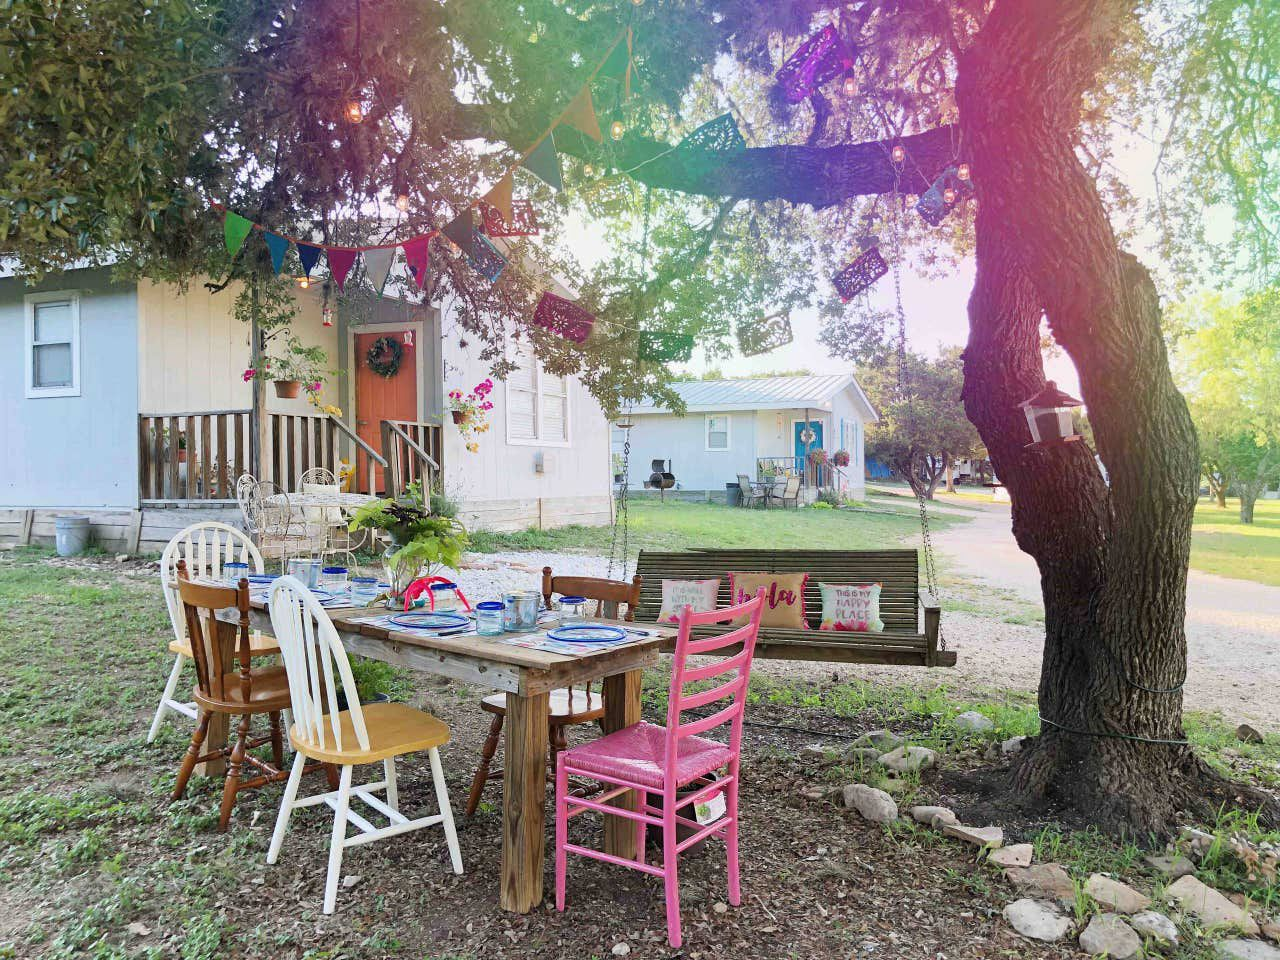 Plan a Texas Hill Country family vacation glamping with Kids near the Frio River.